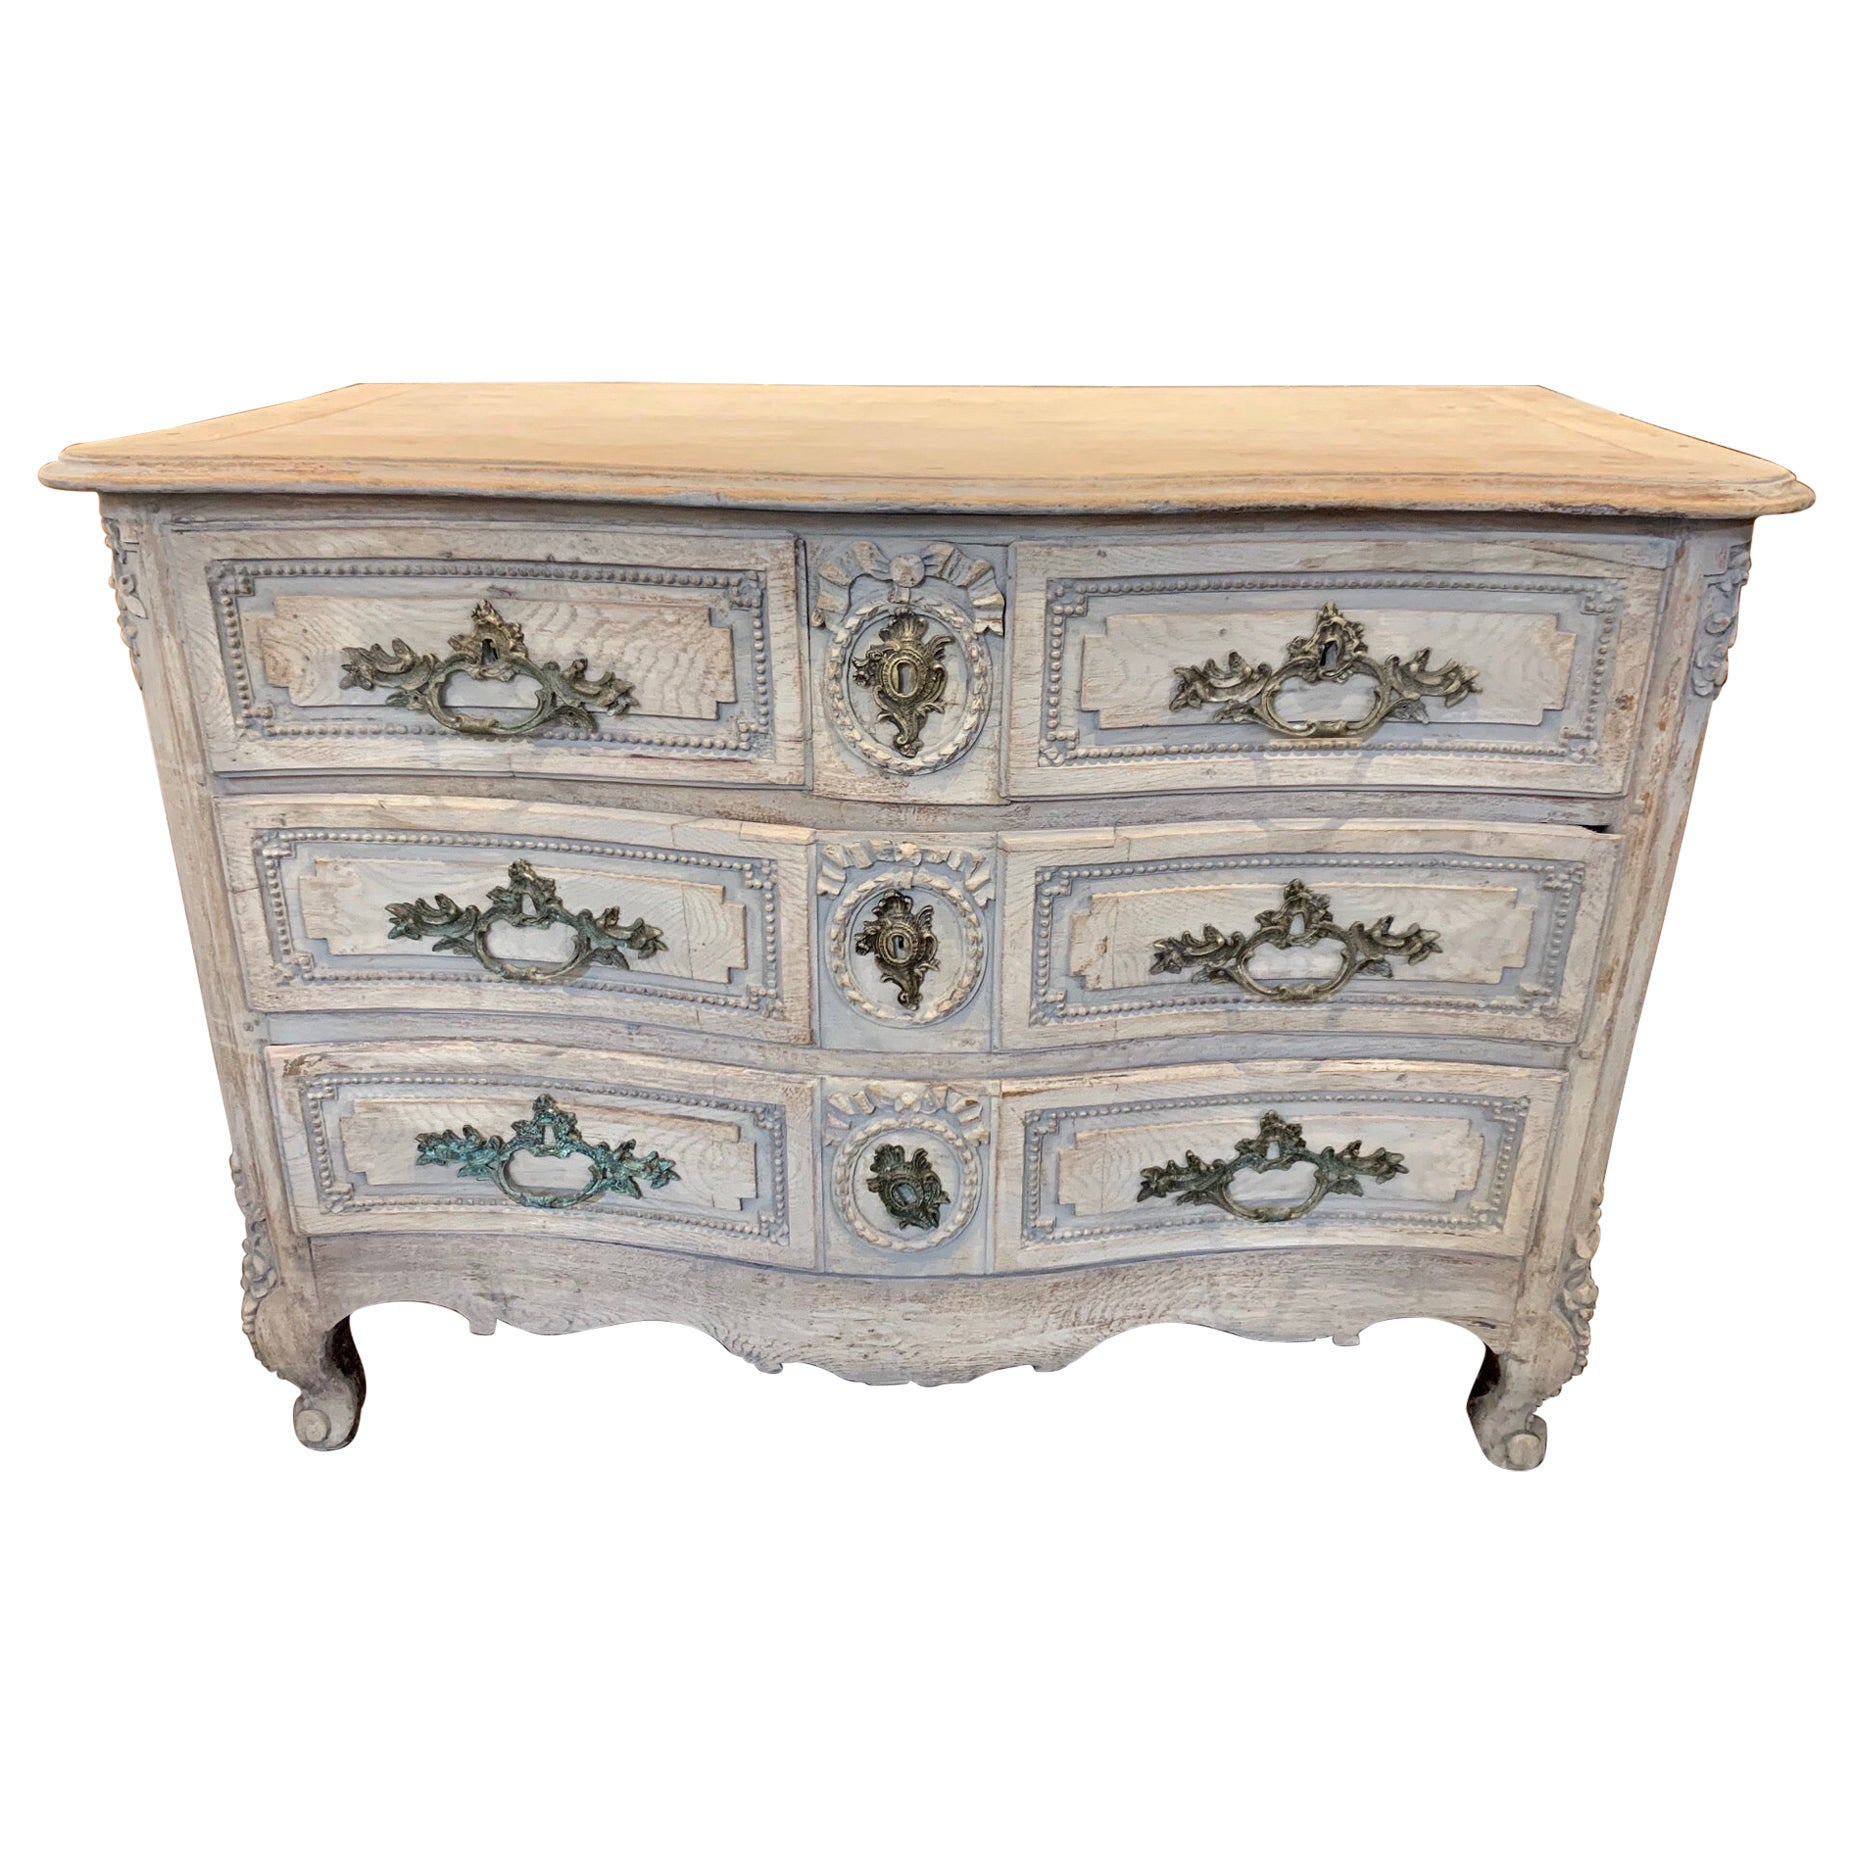 18th Century French Carved and Bleached White Oak Chest